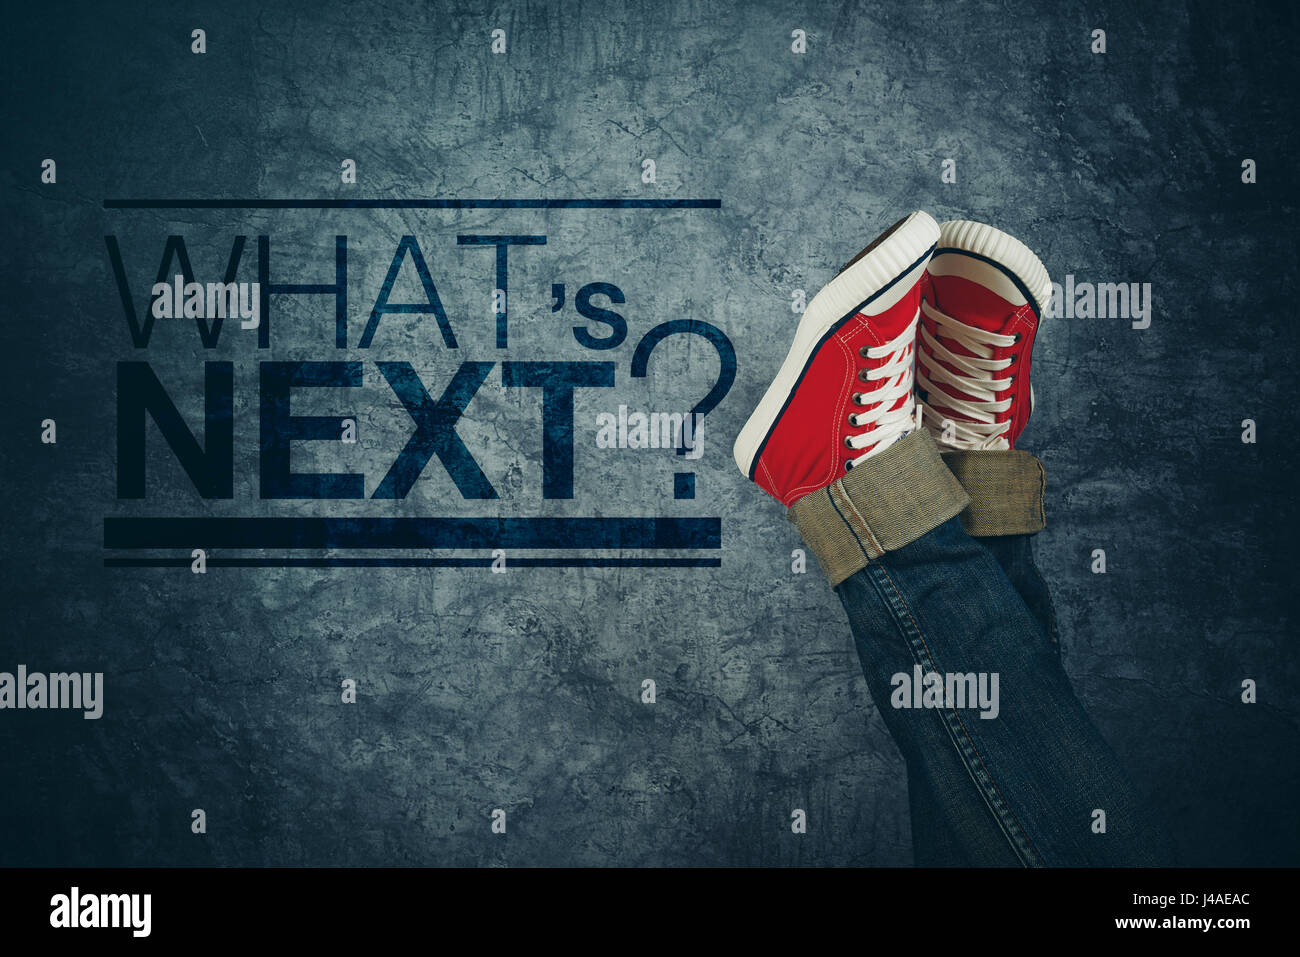 What's next concept, with young person in casual sneakers making plans and setting goals, youth lifestyle and - Stock Image